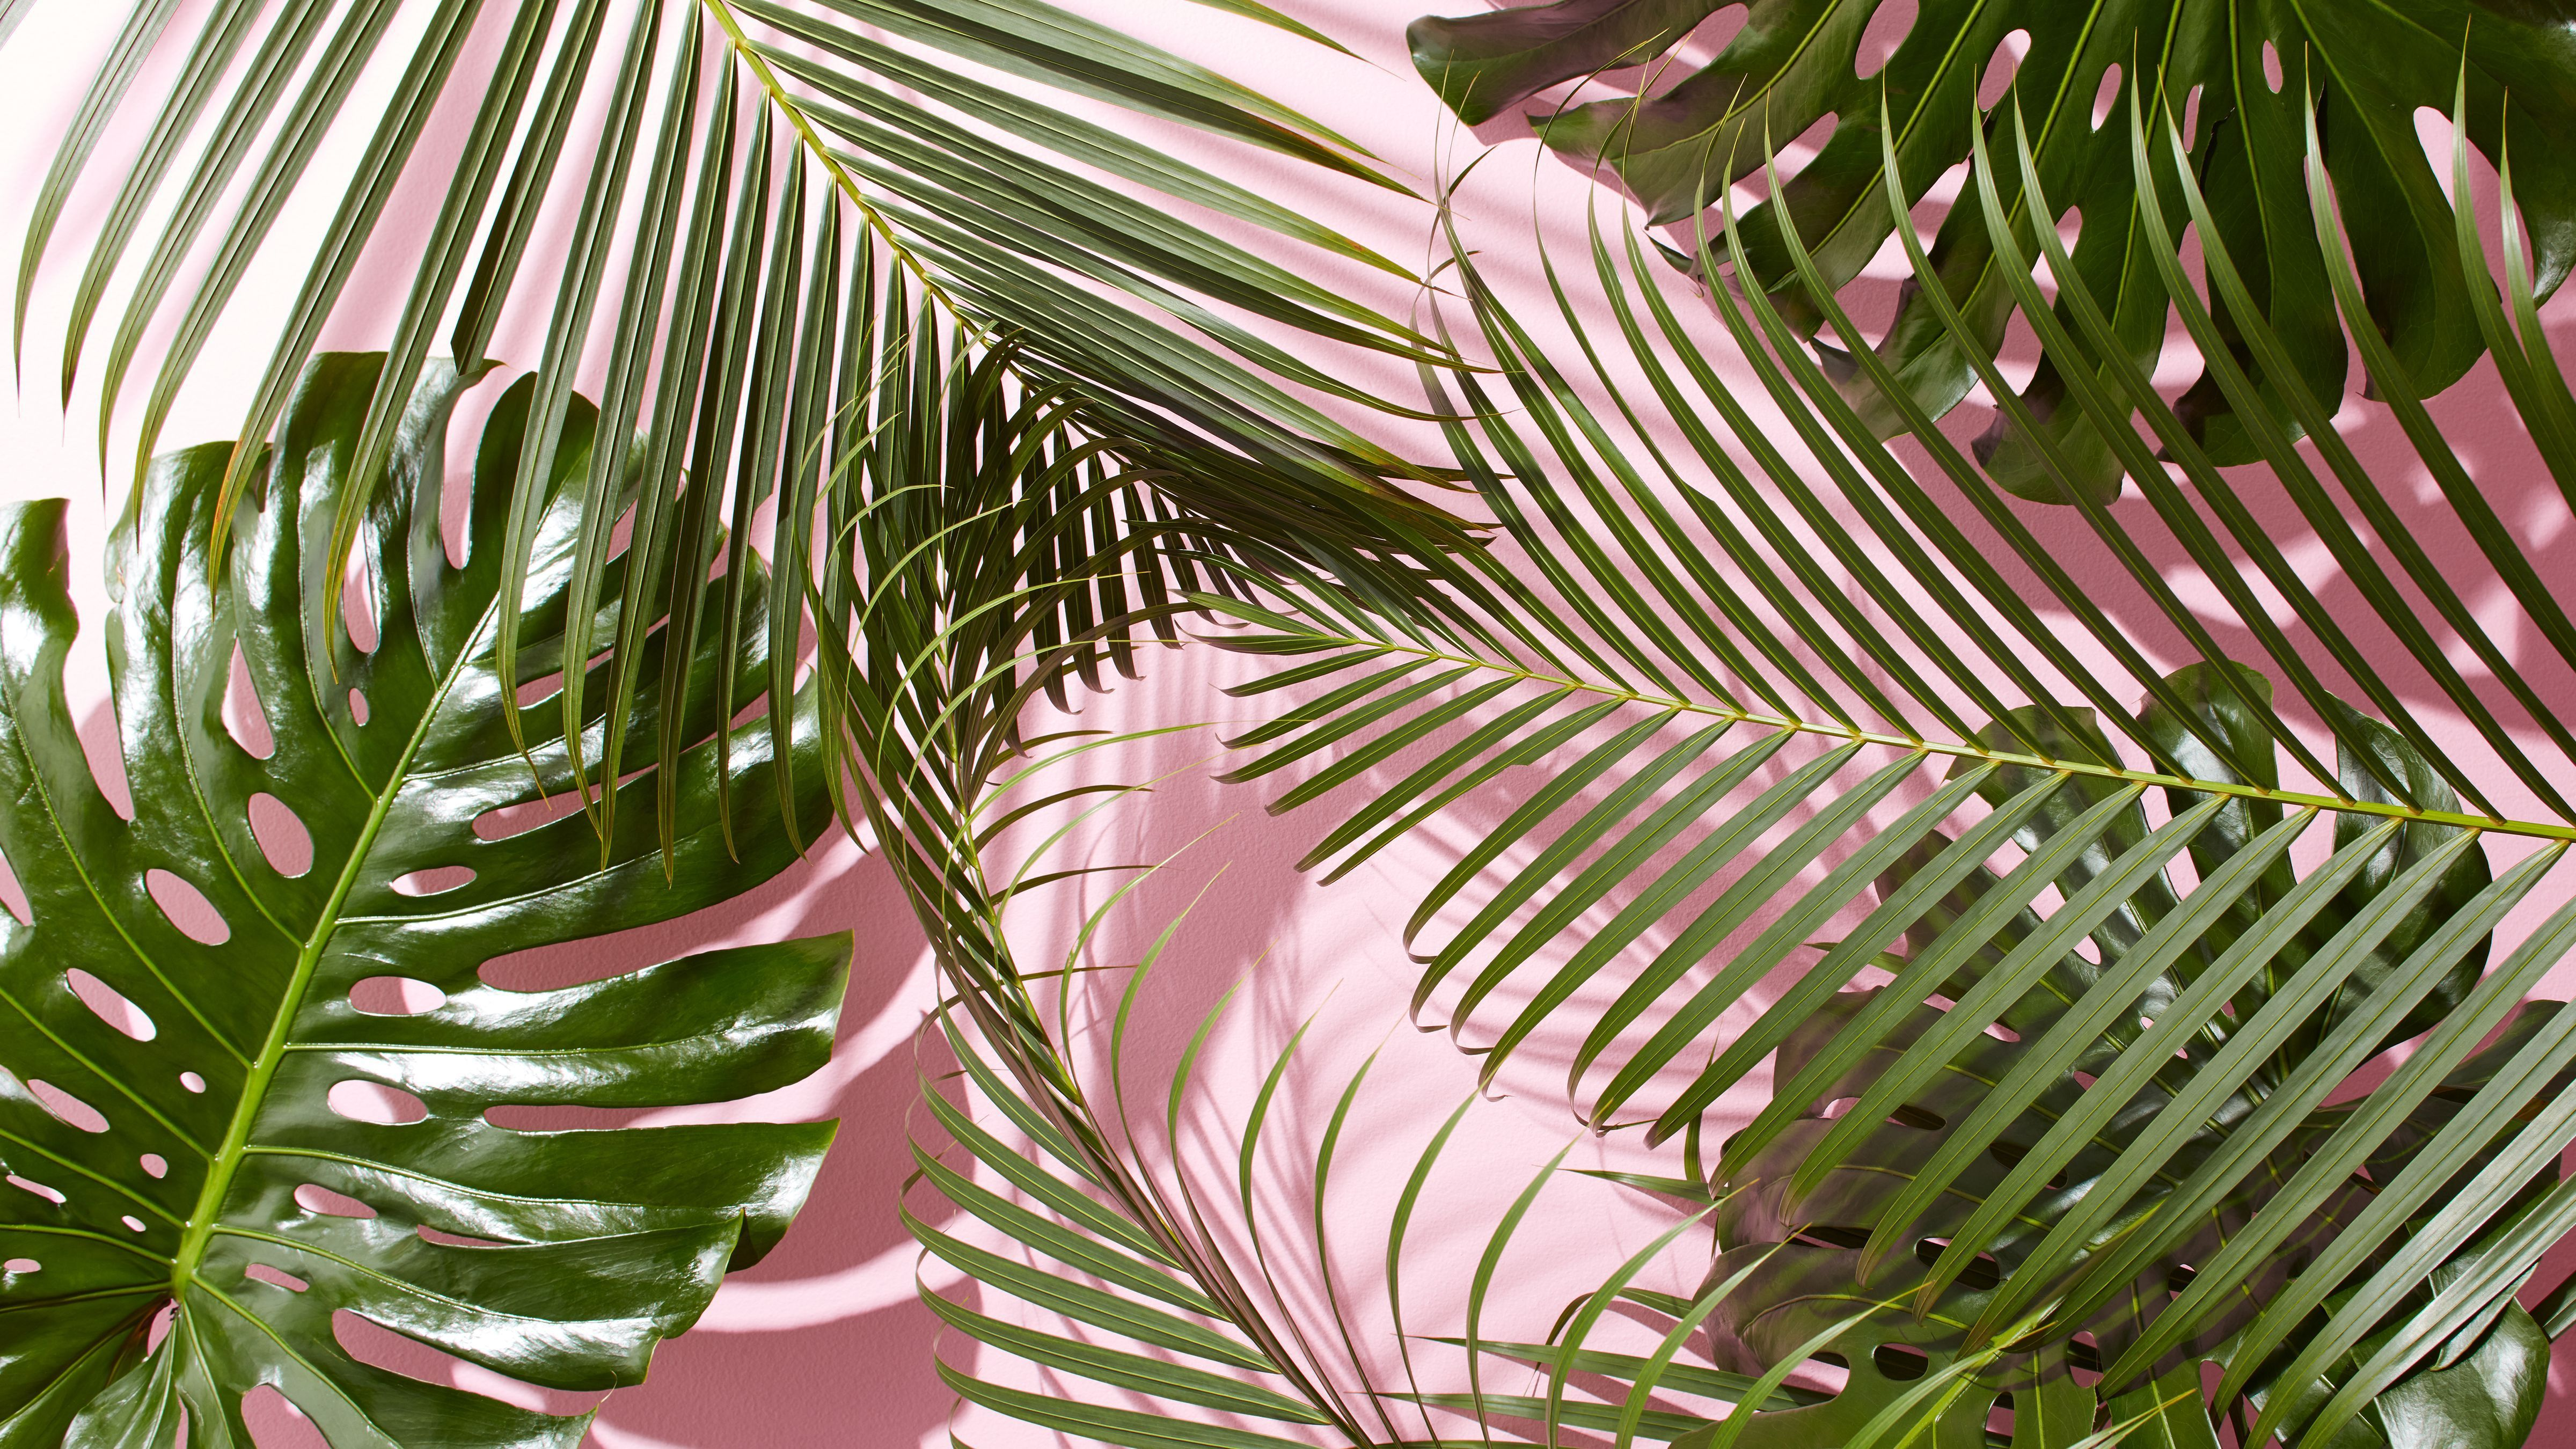 Tropical Aesthetic Wallpapers Top Free Tropical Aesthetic Backgrounds Wallpaperaccess Choose from 700+ tropical leaves graphic resources and download in the form of png, eps, ai or psd. tropical aesthetic wallpapers top